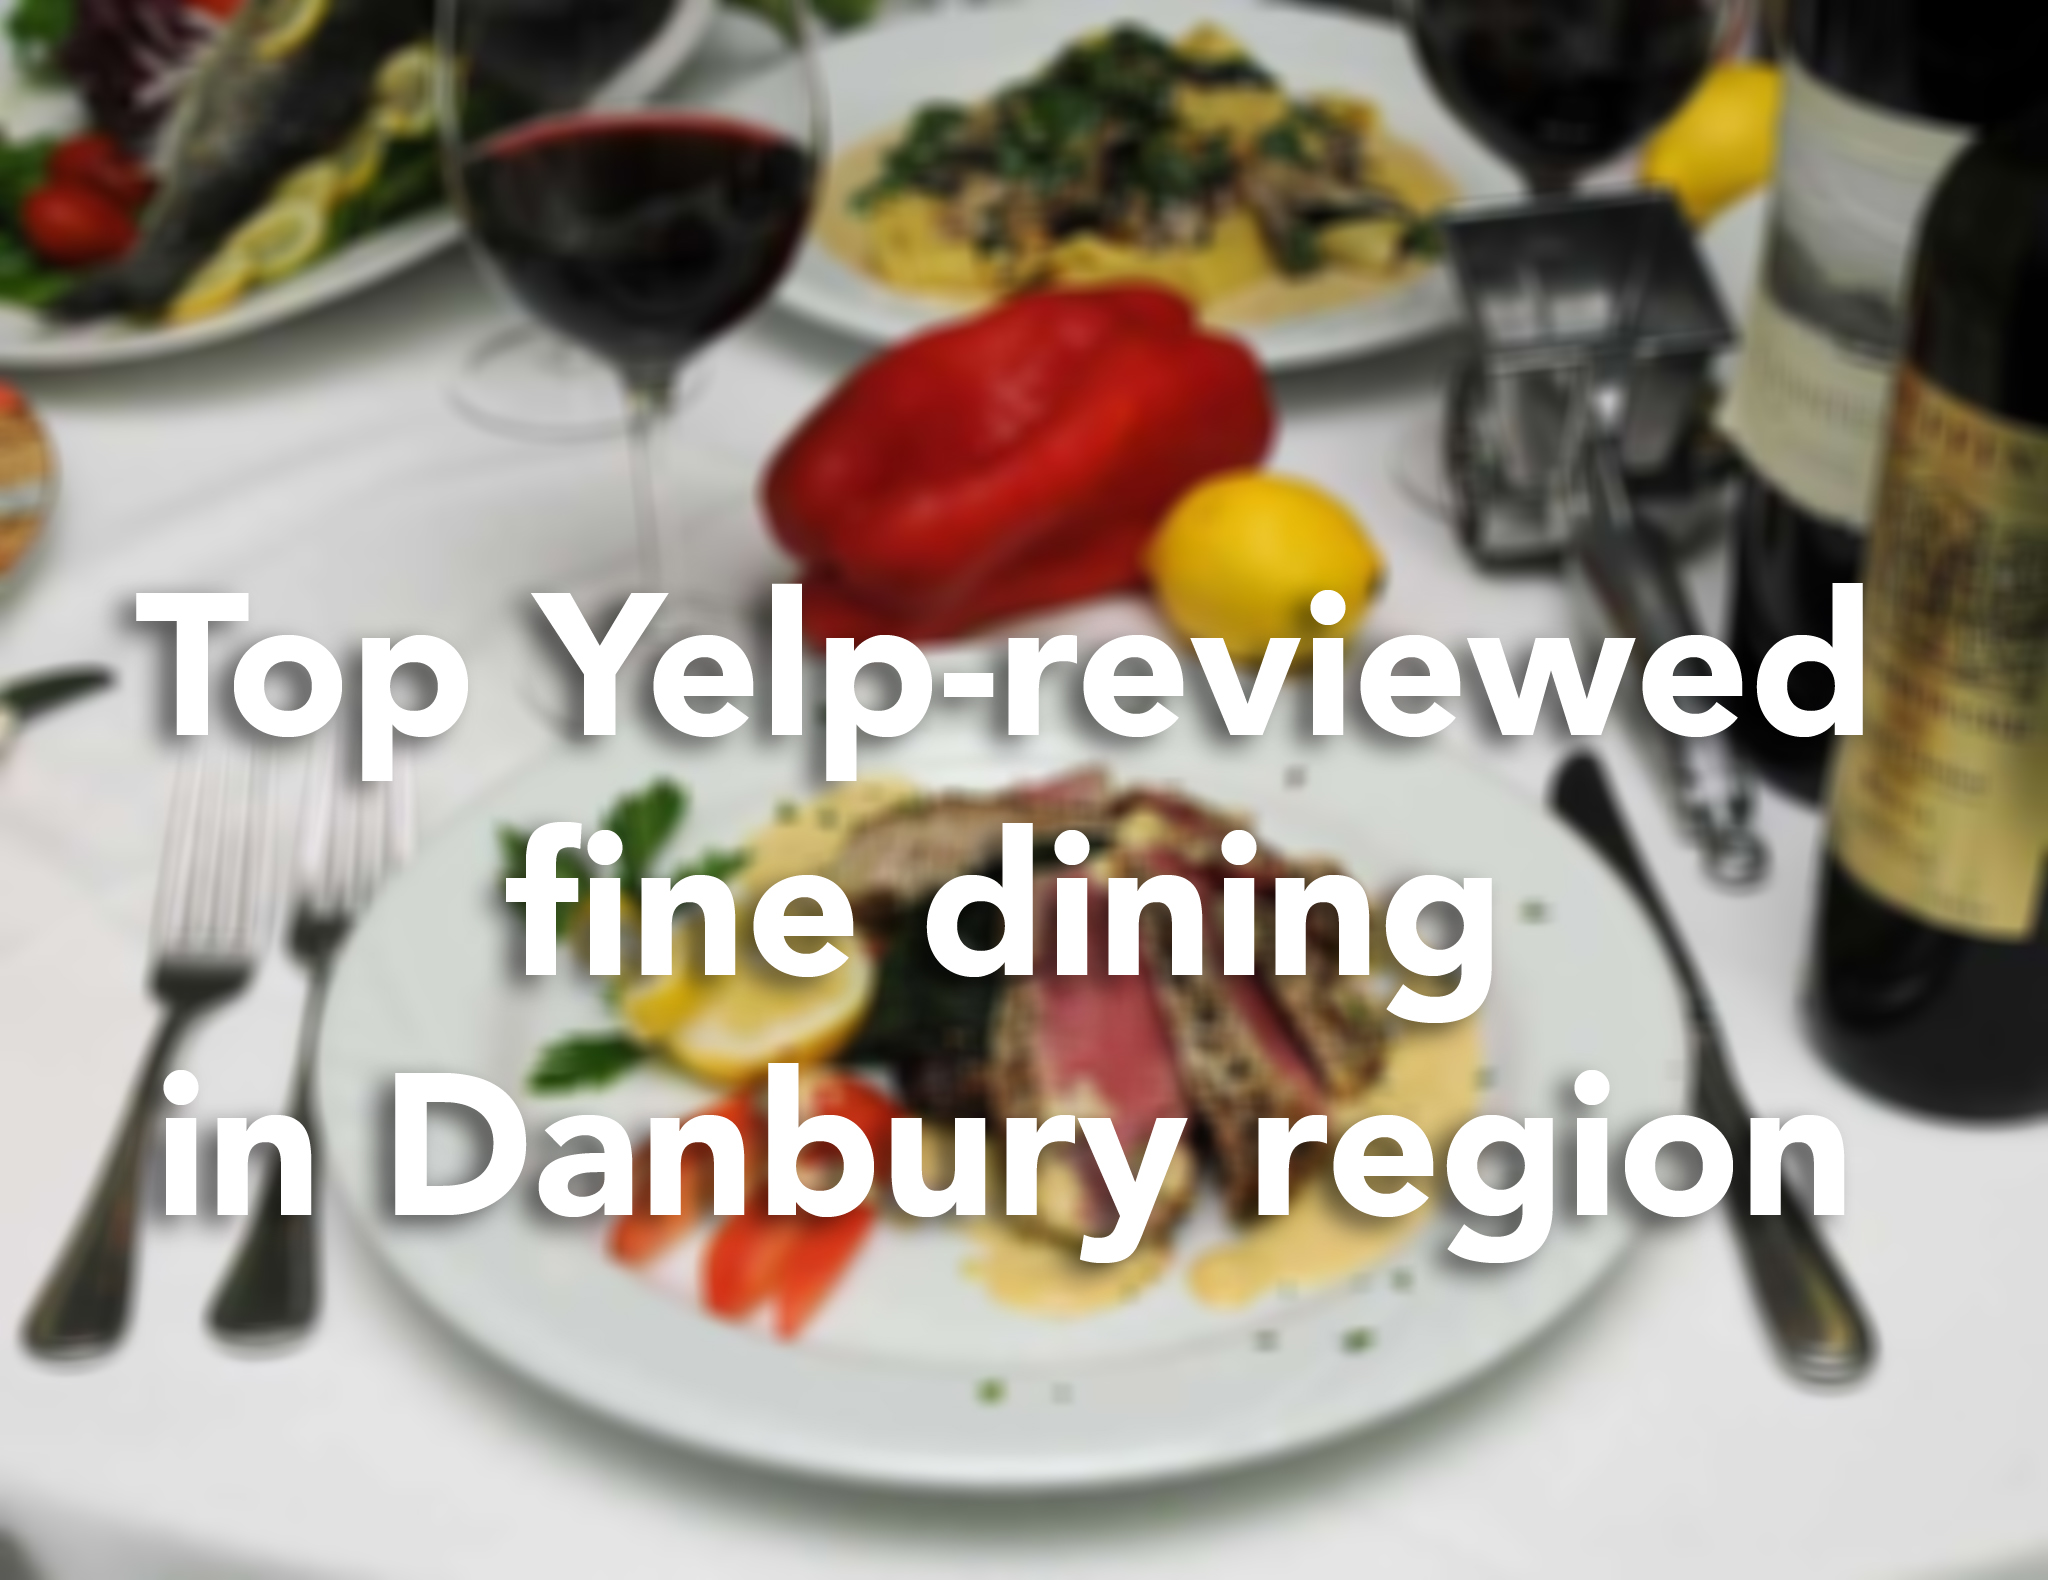 analysis of the upscale fine dining 13 of the fanciest upscale restaurants in central pennsylvania visits to fine dining restaurants increased by 5 to see the fanciest upscale restaurants in.